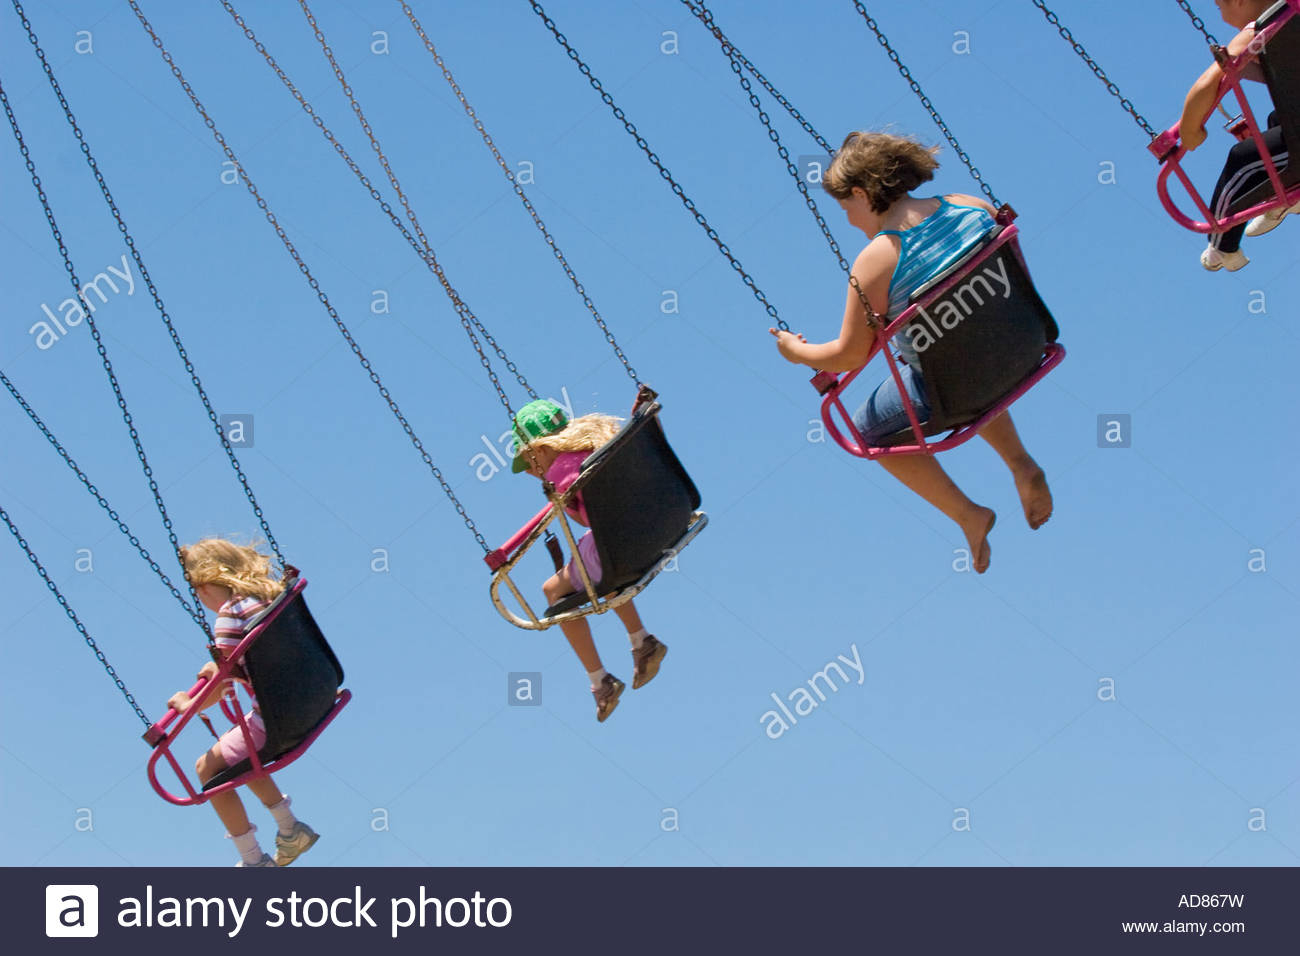 Children Flying In The Air On Seats Hanging From Chains On A Pertaining To Swing Seats With Chains (View 21 of 25)